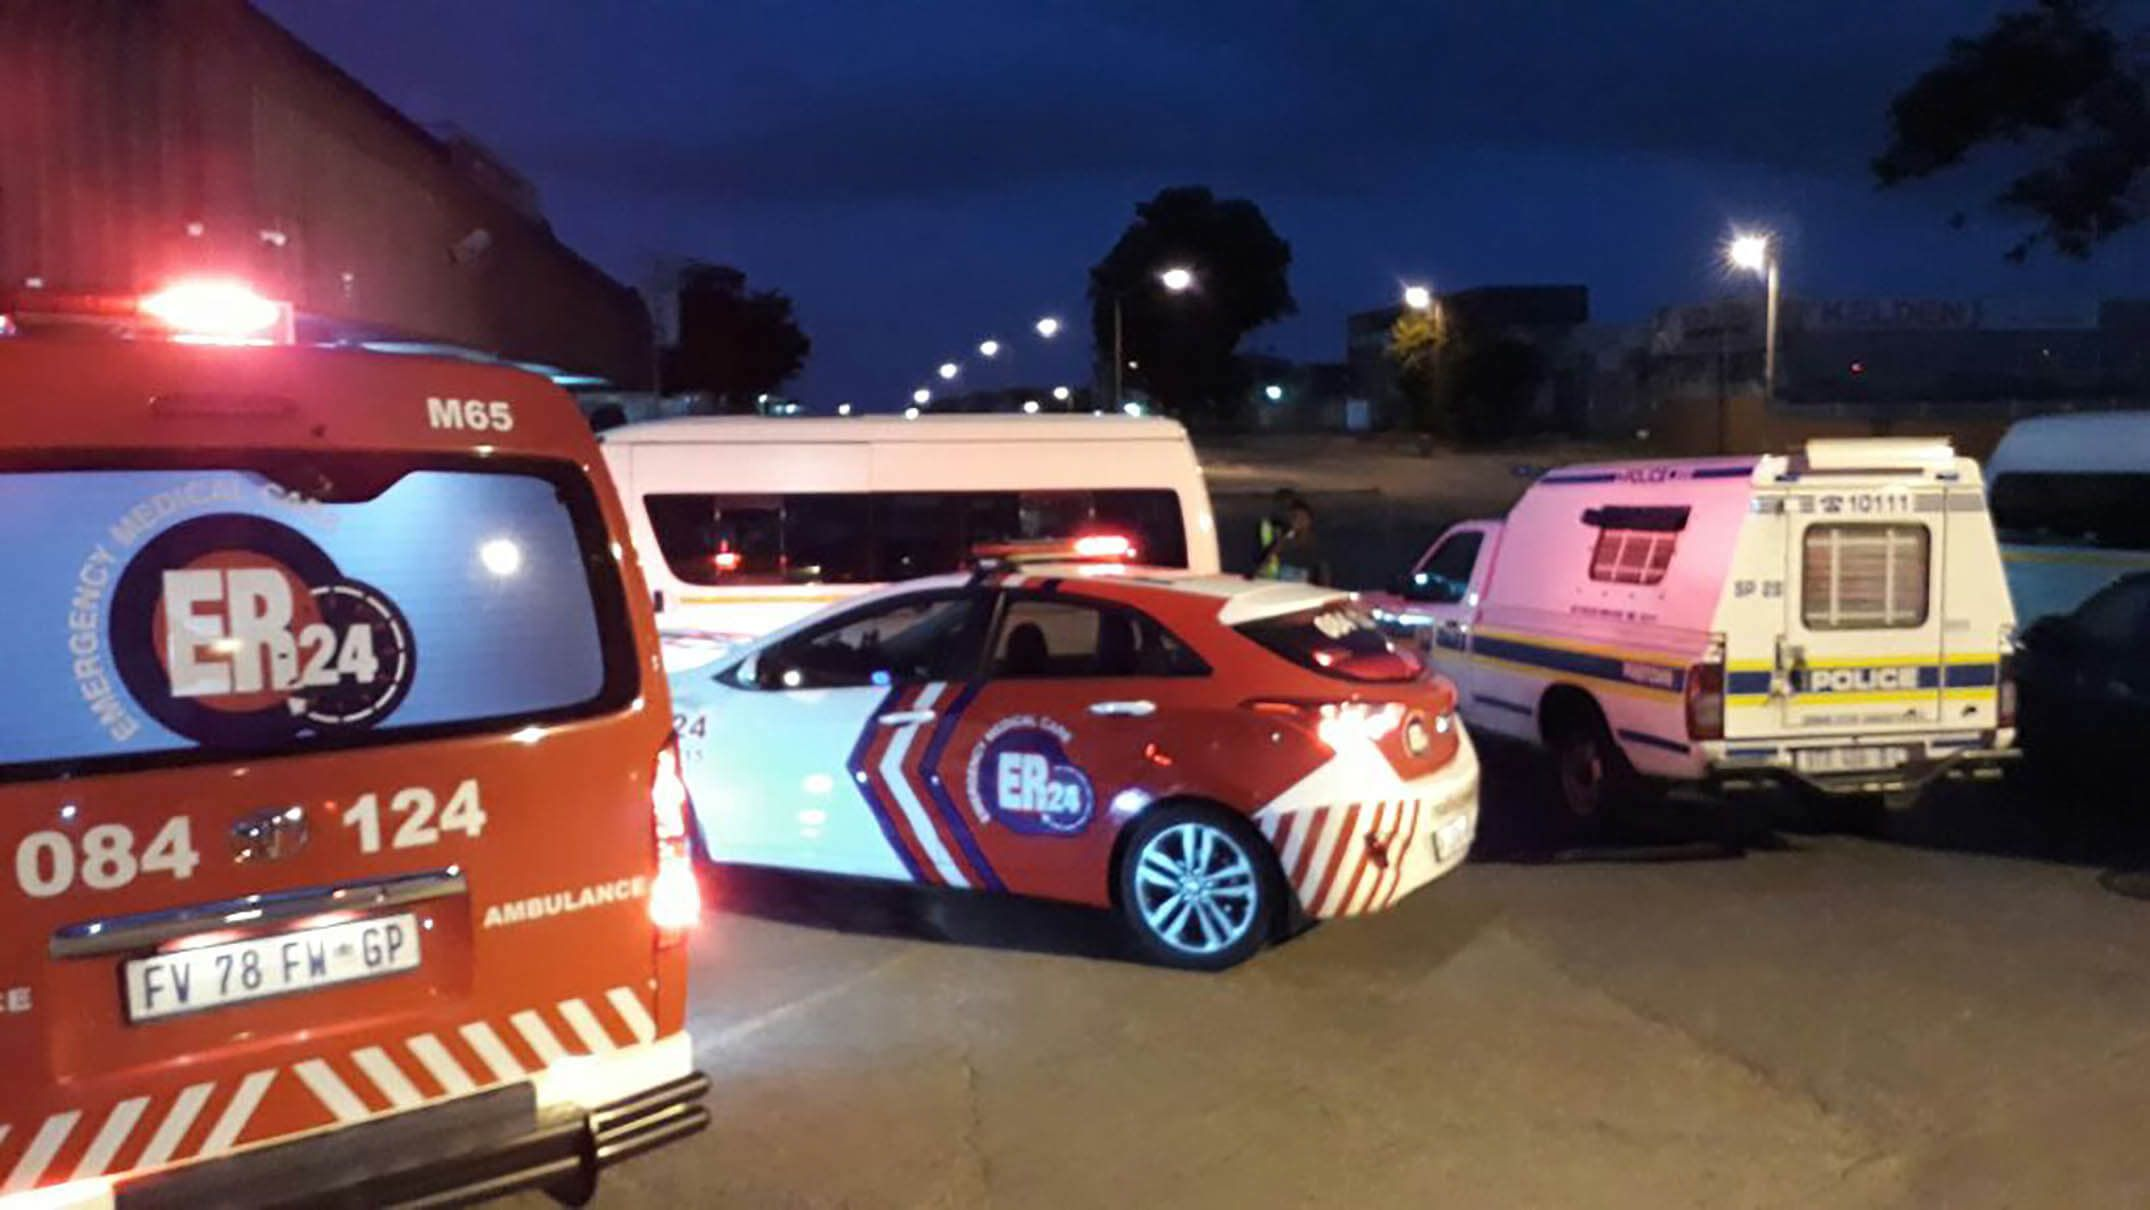 HIJACKING: A Woman(25) Seriously injured when she was Shot during Attempted Hijacking, Pinetown